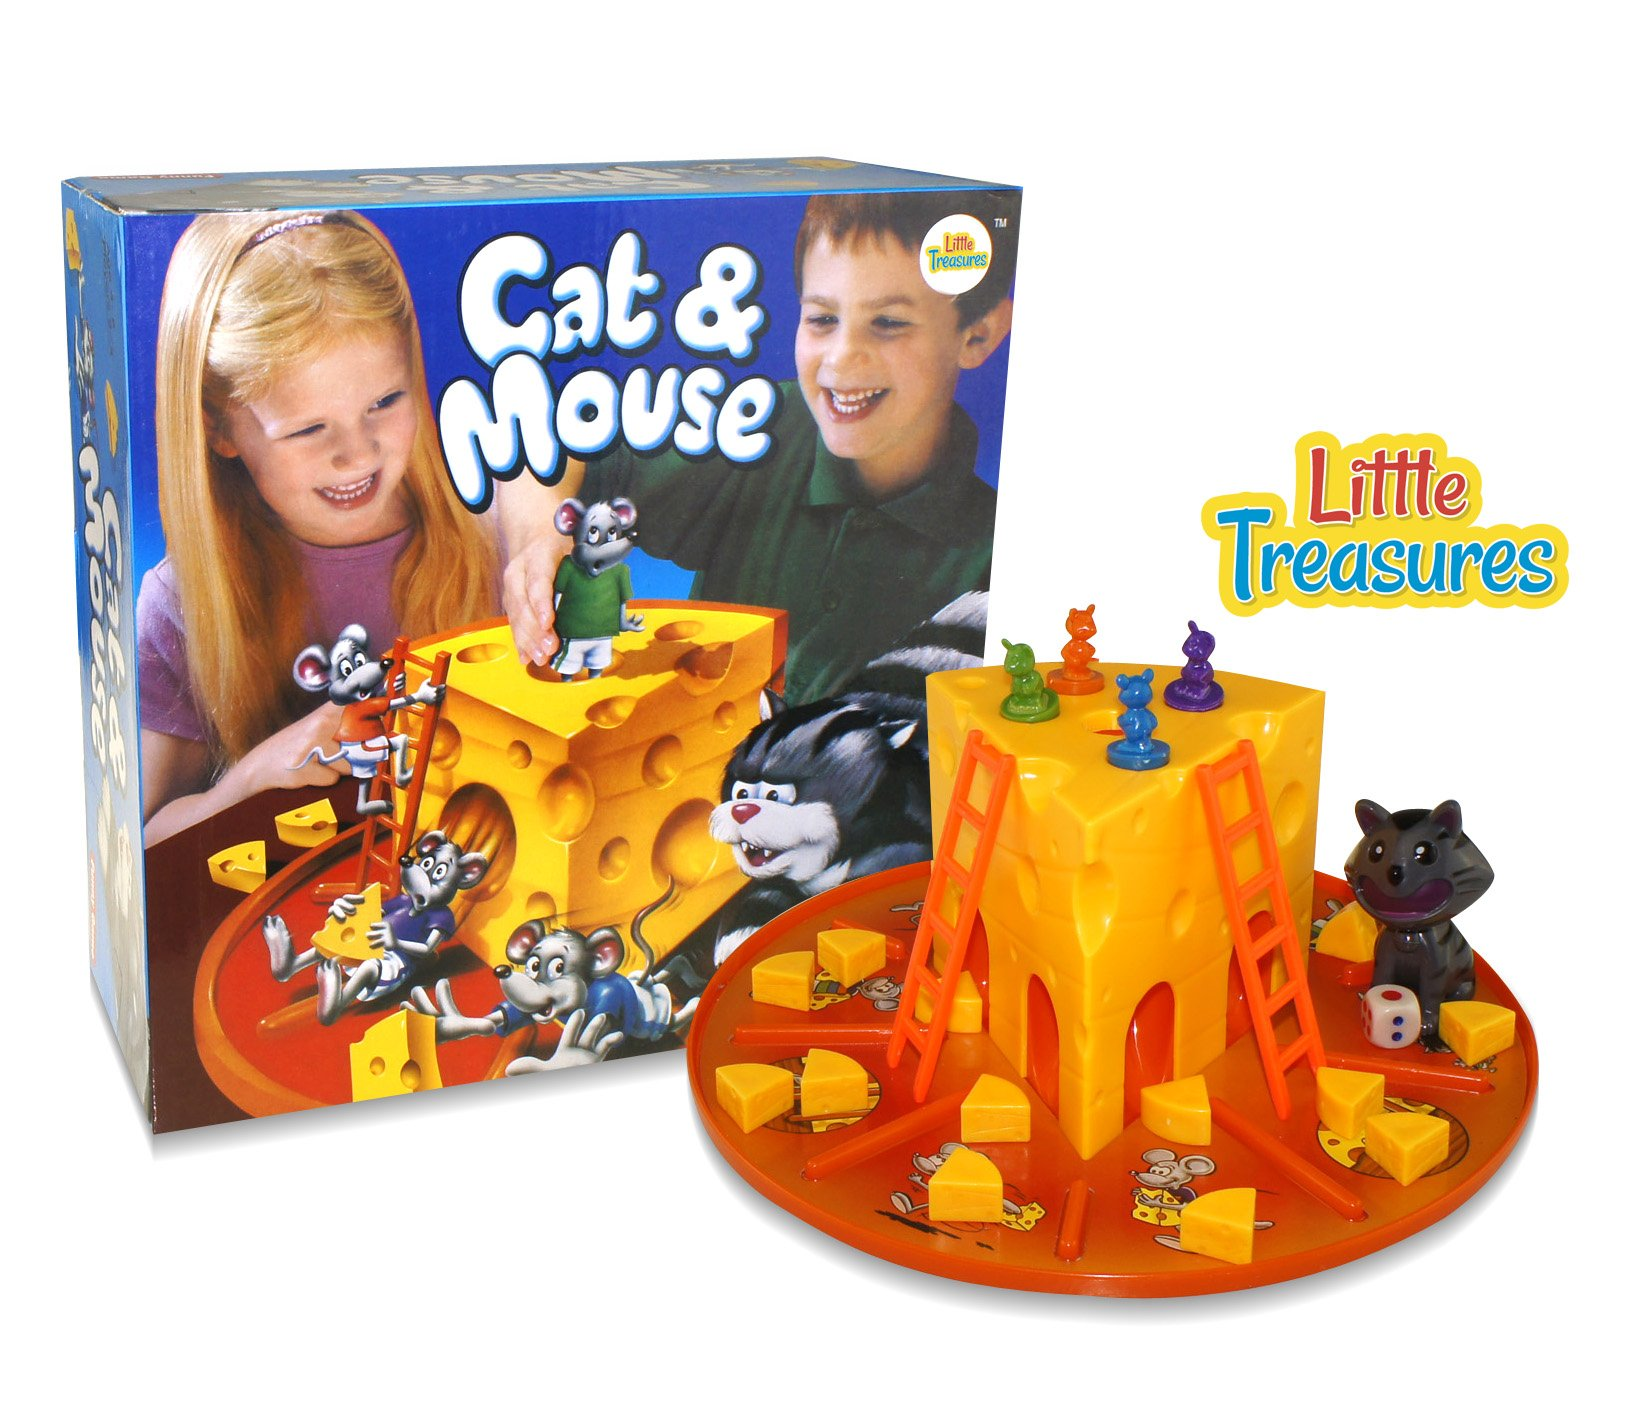 what is a cat and mouse game